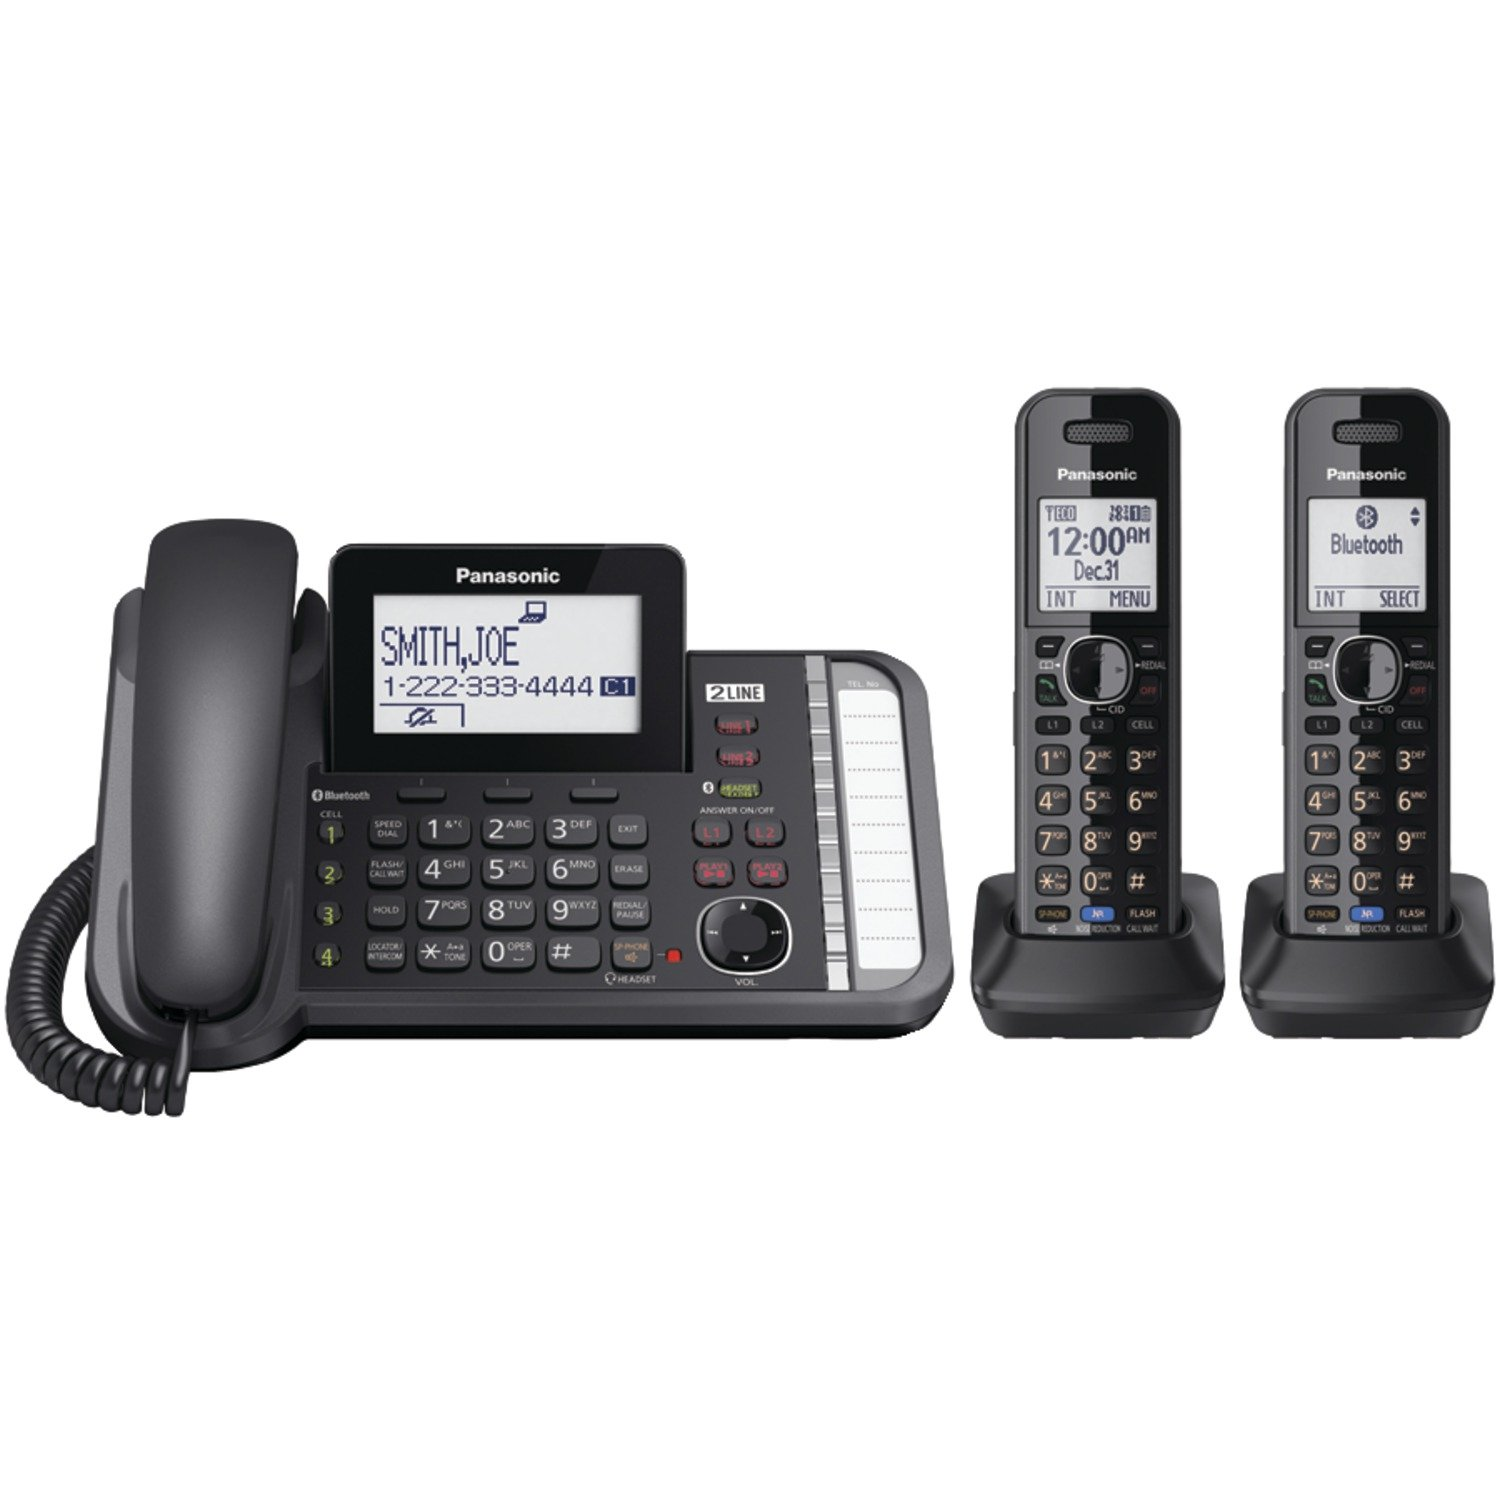 PANASONIC 2-Line Cordless Phone with 3-Way Conferencing, Call Blocking and Answering Machine